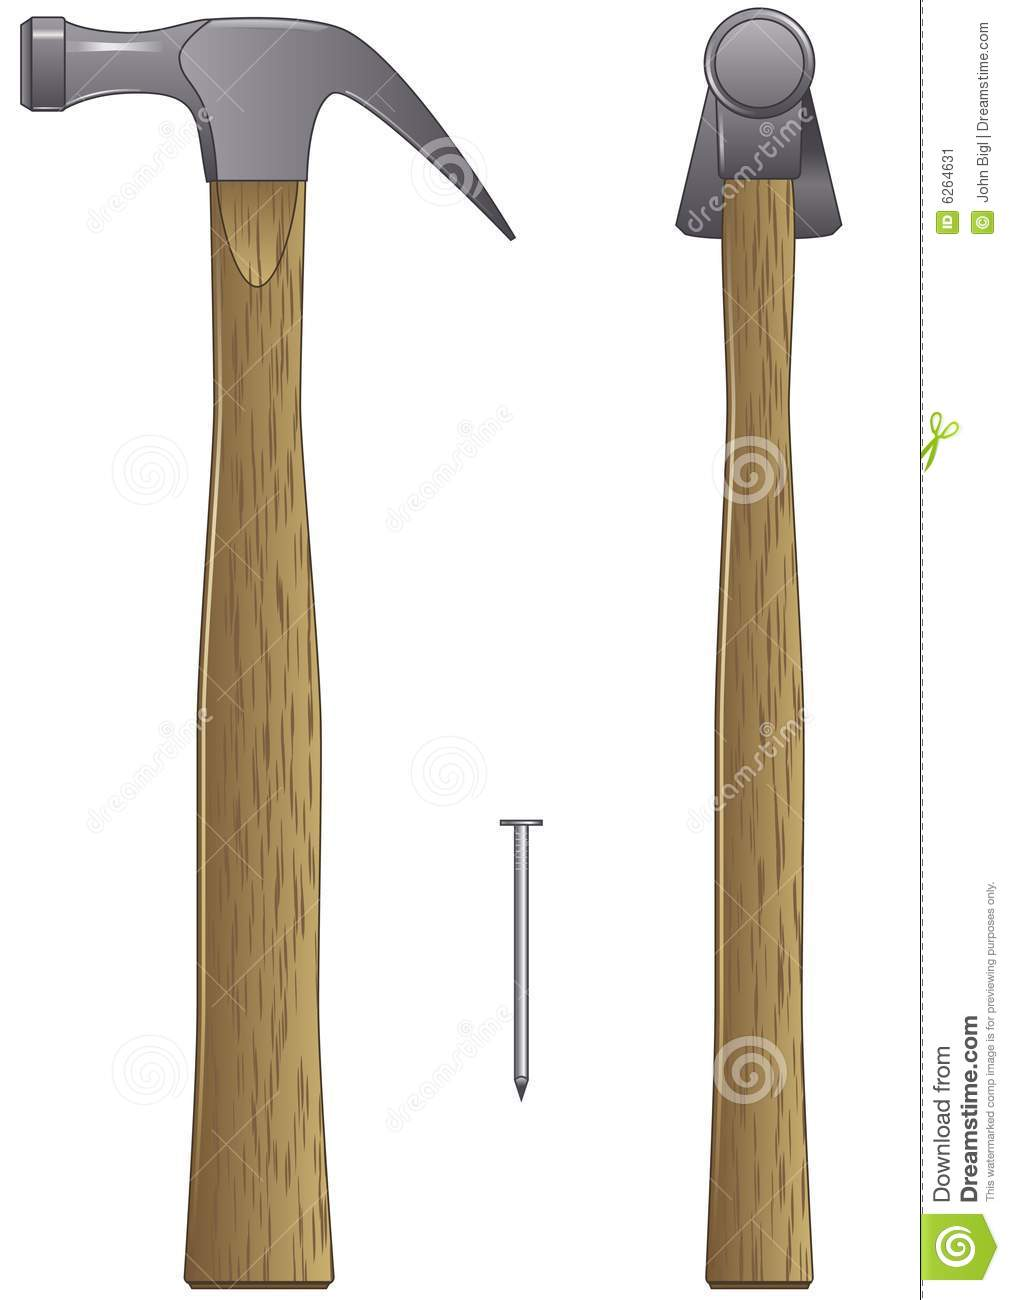 Hammer And Nail Stock Vector Illustration Of Woodworking 6264631